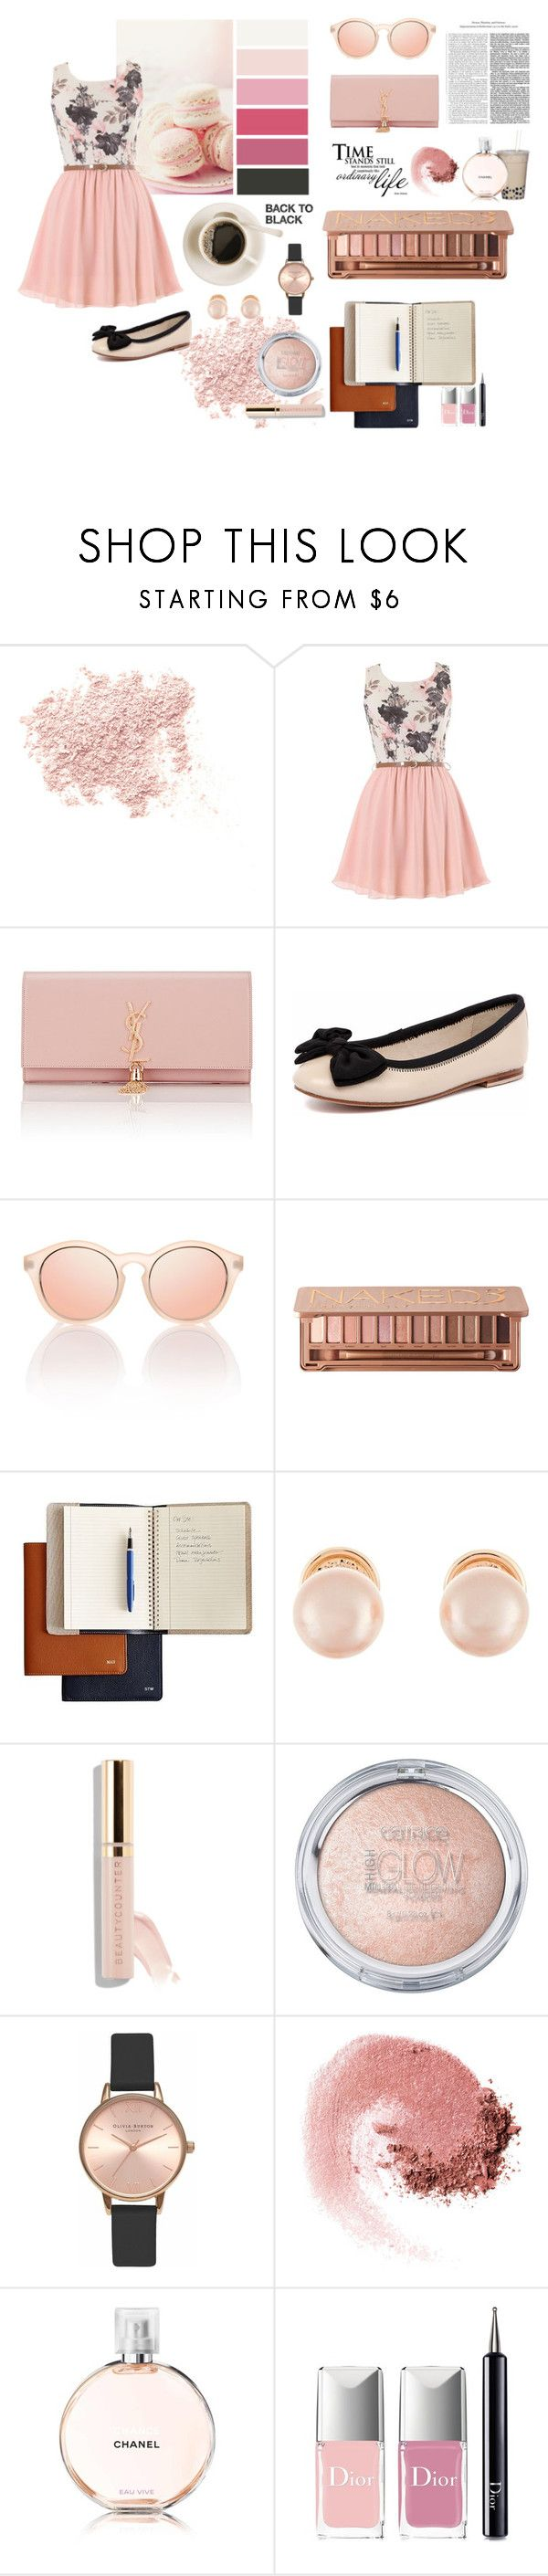 """""""Just pink in my life"""" by fantalisa on Polyvore featuring moda, Bare Escentuals, Yves Saint Laurent, Human Premium, Urban Decay, Kenneth Jay Lane, Olivia Burton, NARS Cosmetics e Christian Dior"""